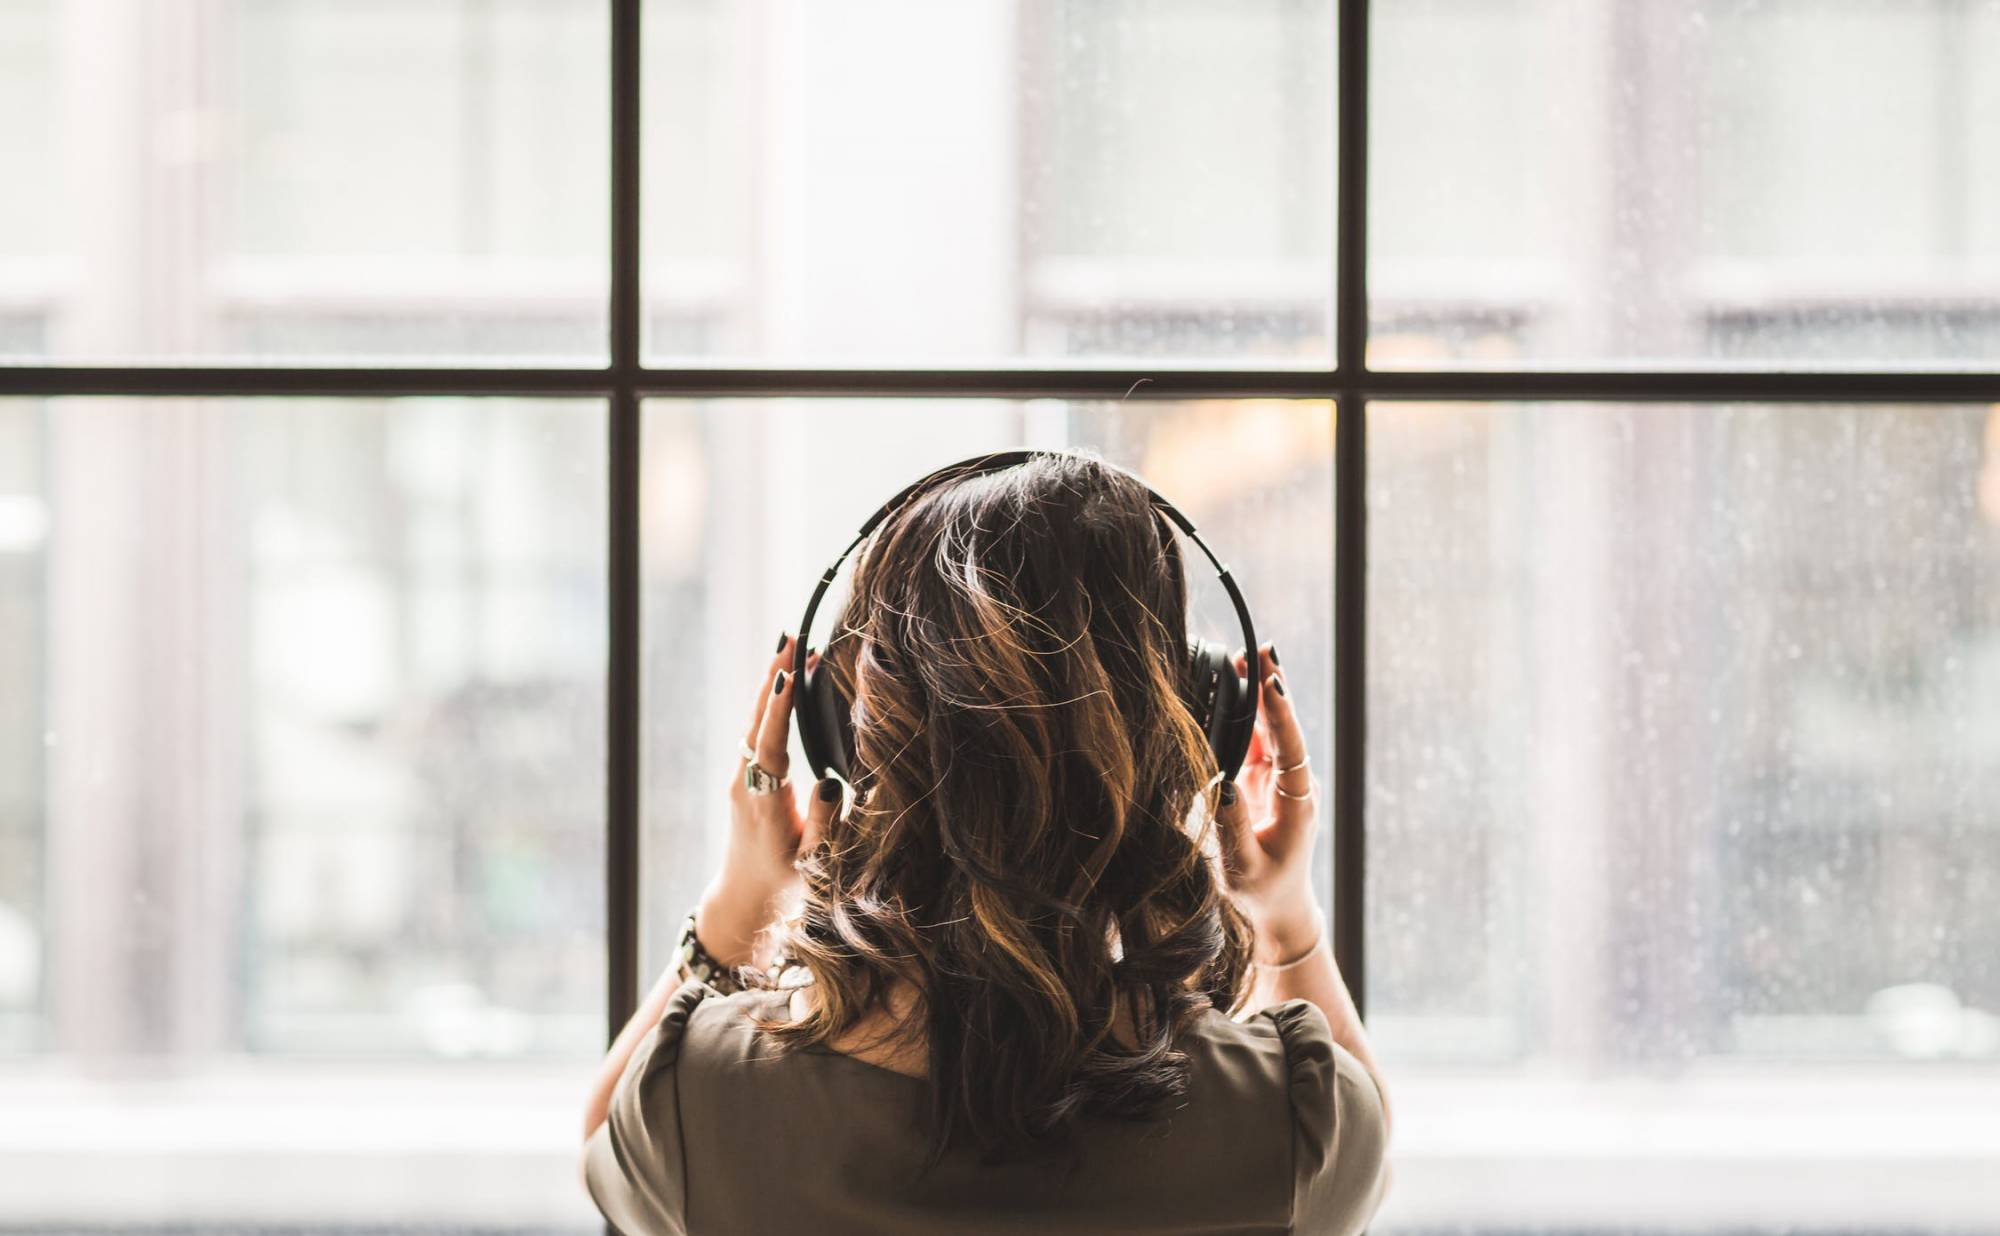 Photo of a woman staring out the window with headphones on